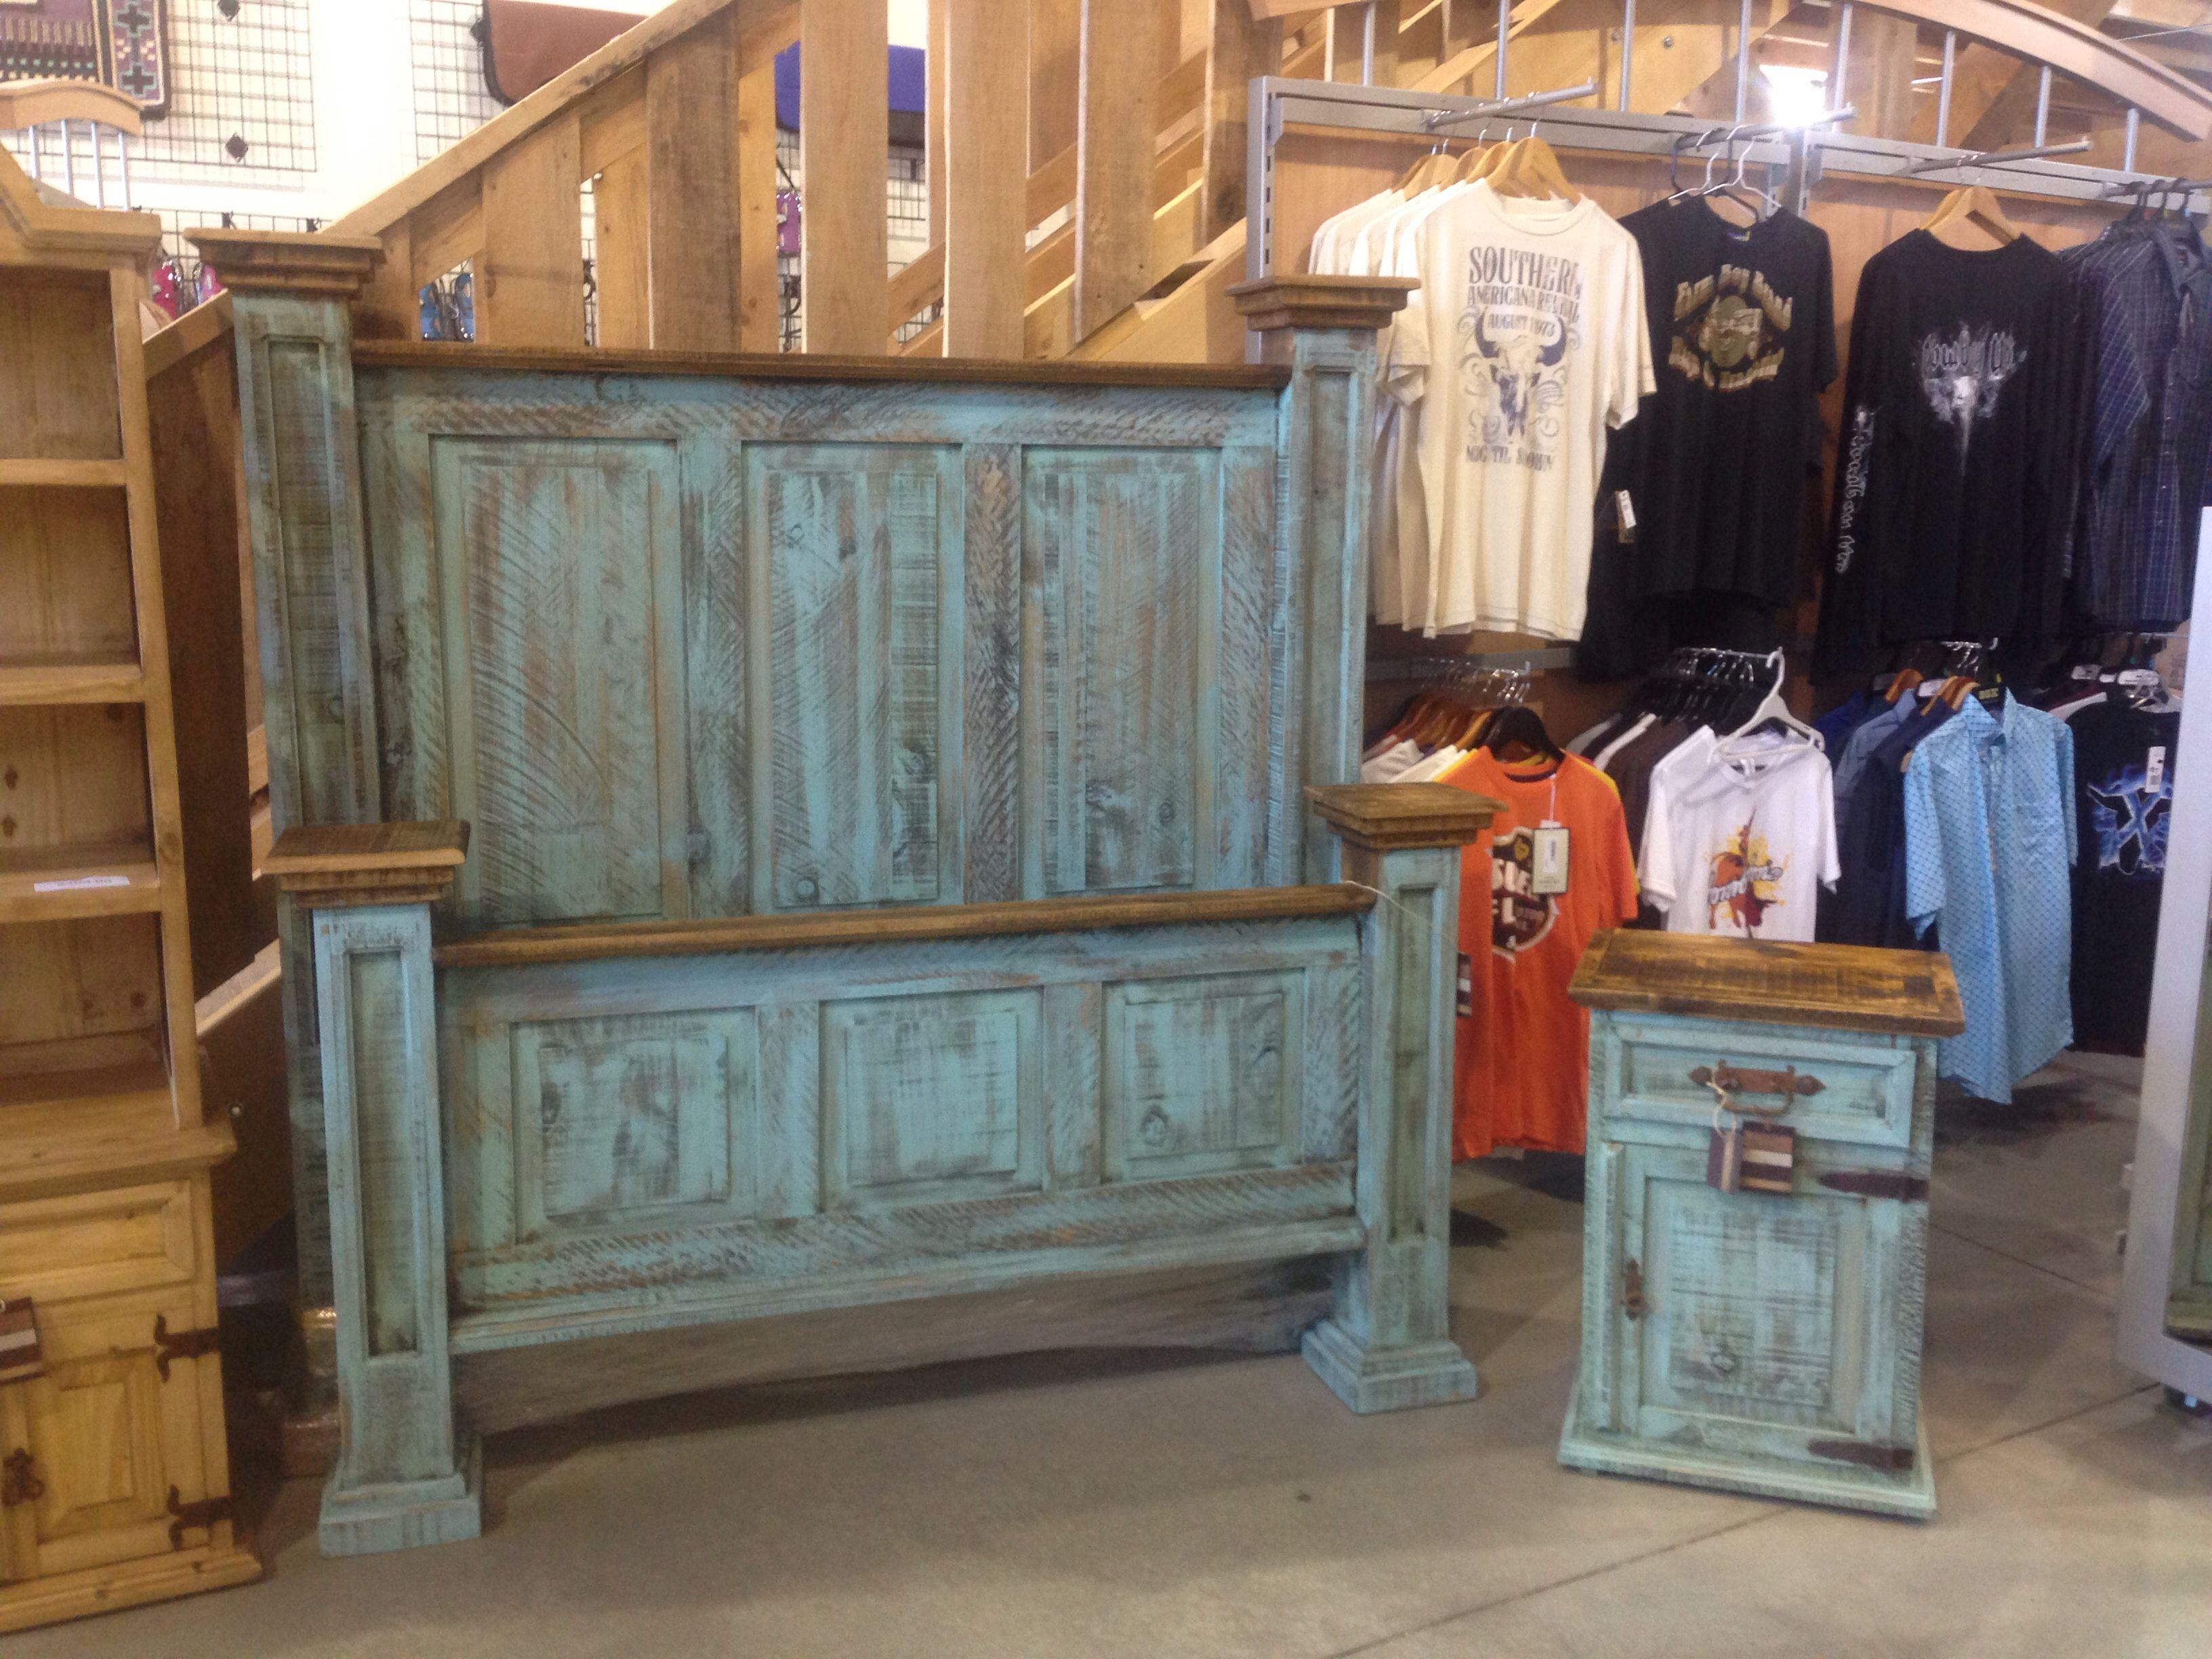 White rustic bedroom furniture - Turquoise Wash Rustic Bedroom Furniture Http Www Rusticfurnitureoutlet Ca